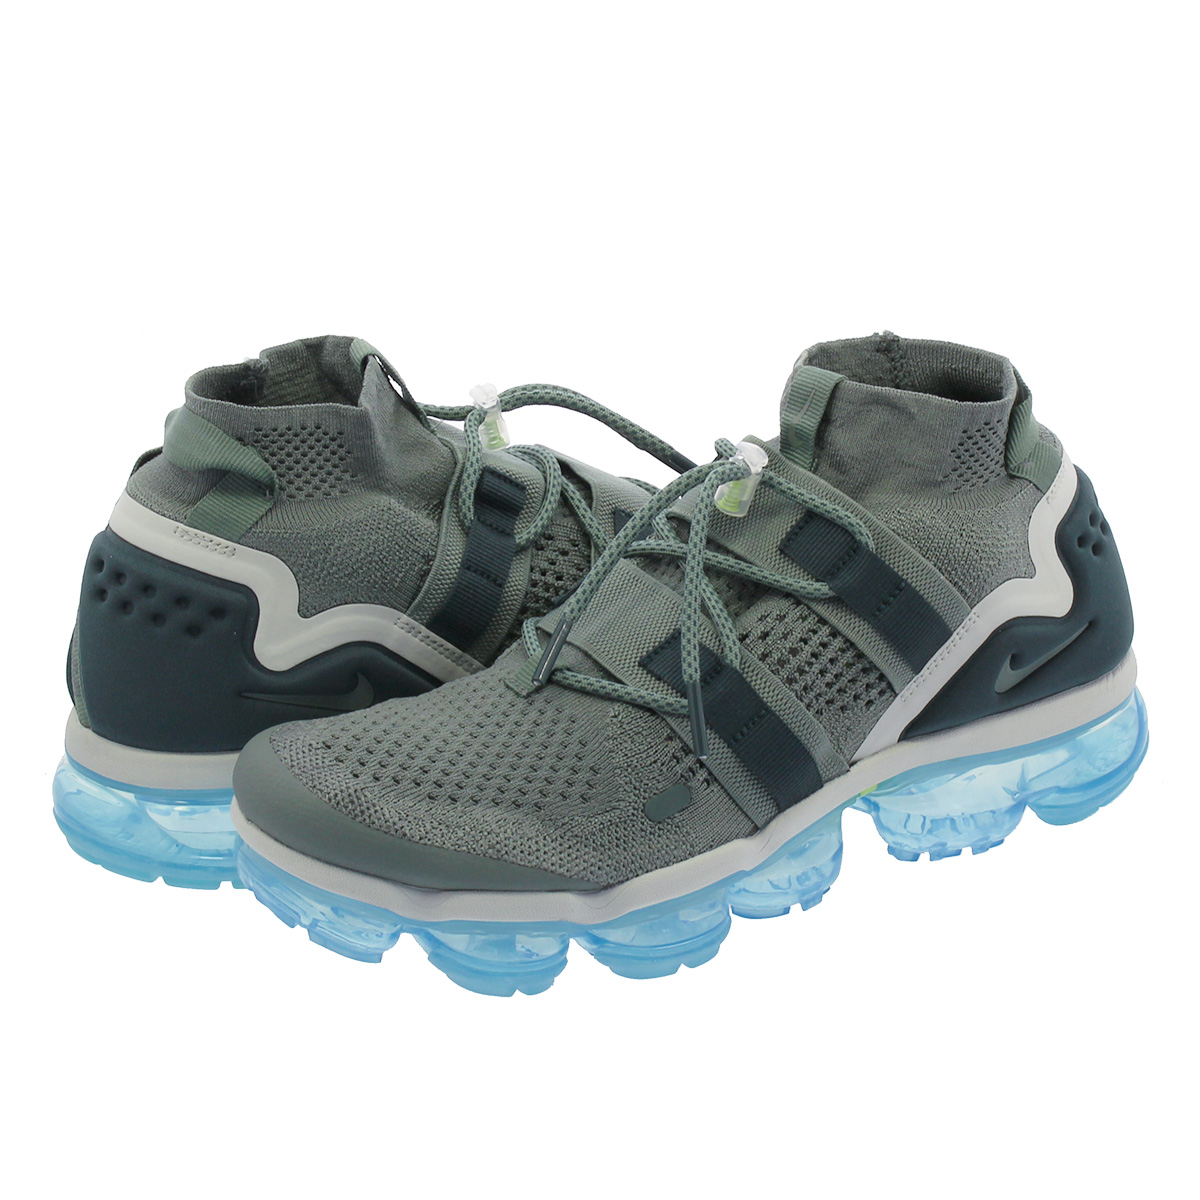 NIKE AIR VAPORMAX FLYKNIT UTILITY ナイキ ヴェイパー マックス フライニット ユーティリティー GREEN/FADED SPRUCE/BARELY ah6834-300